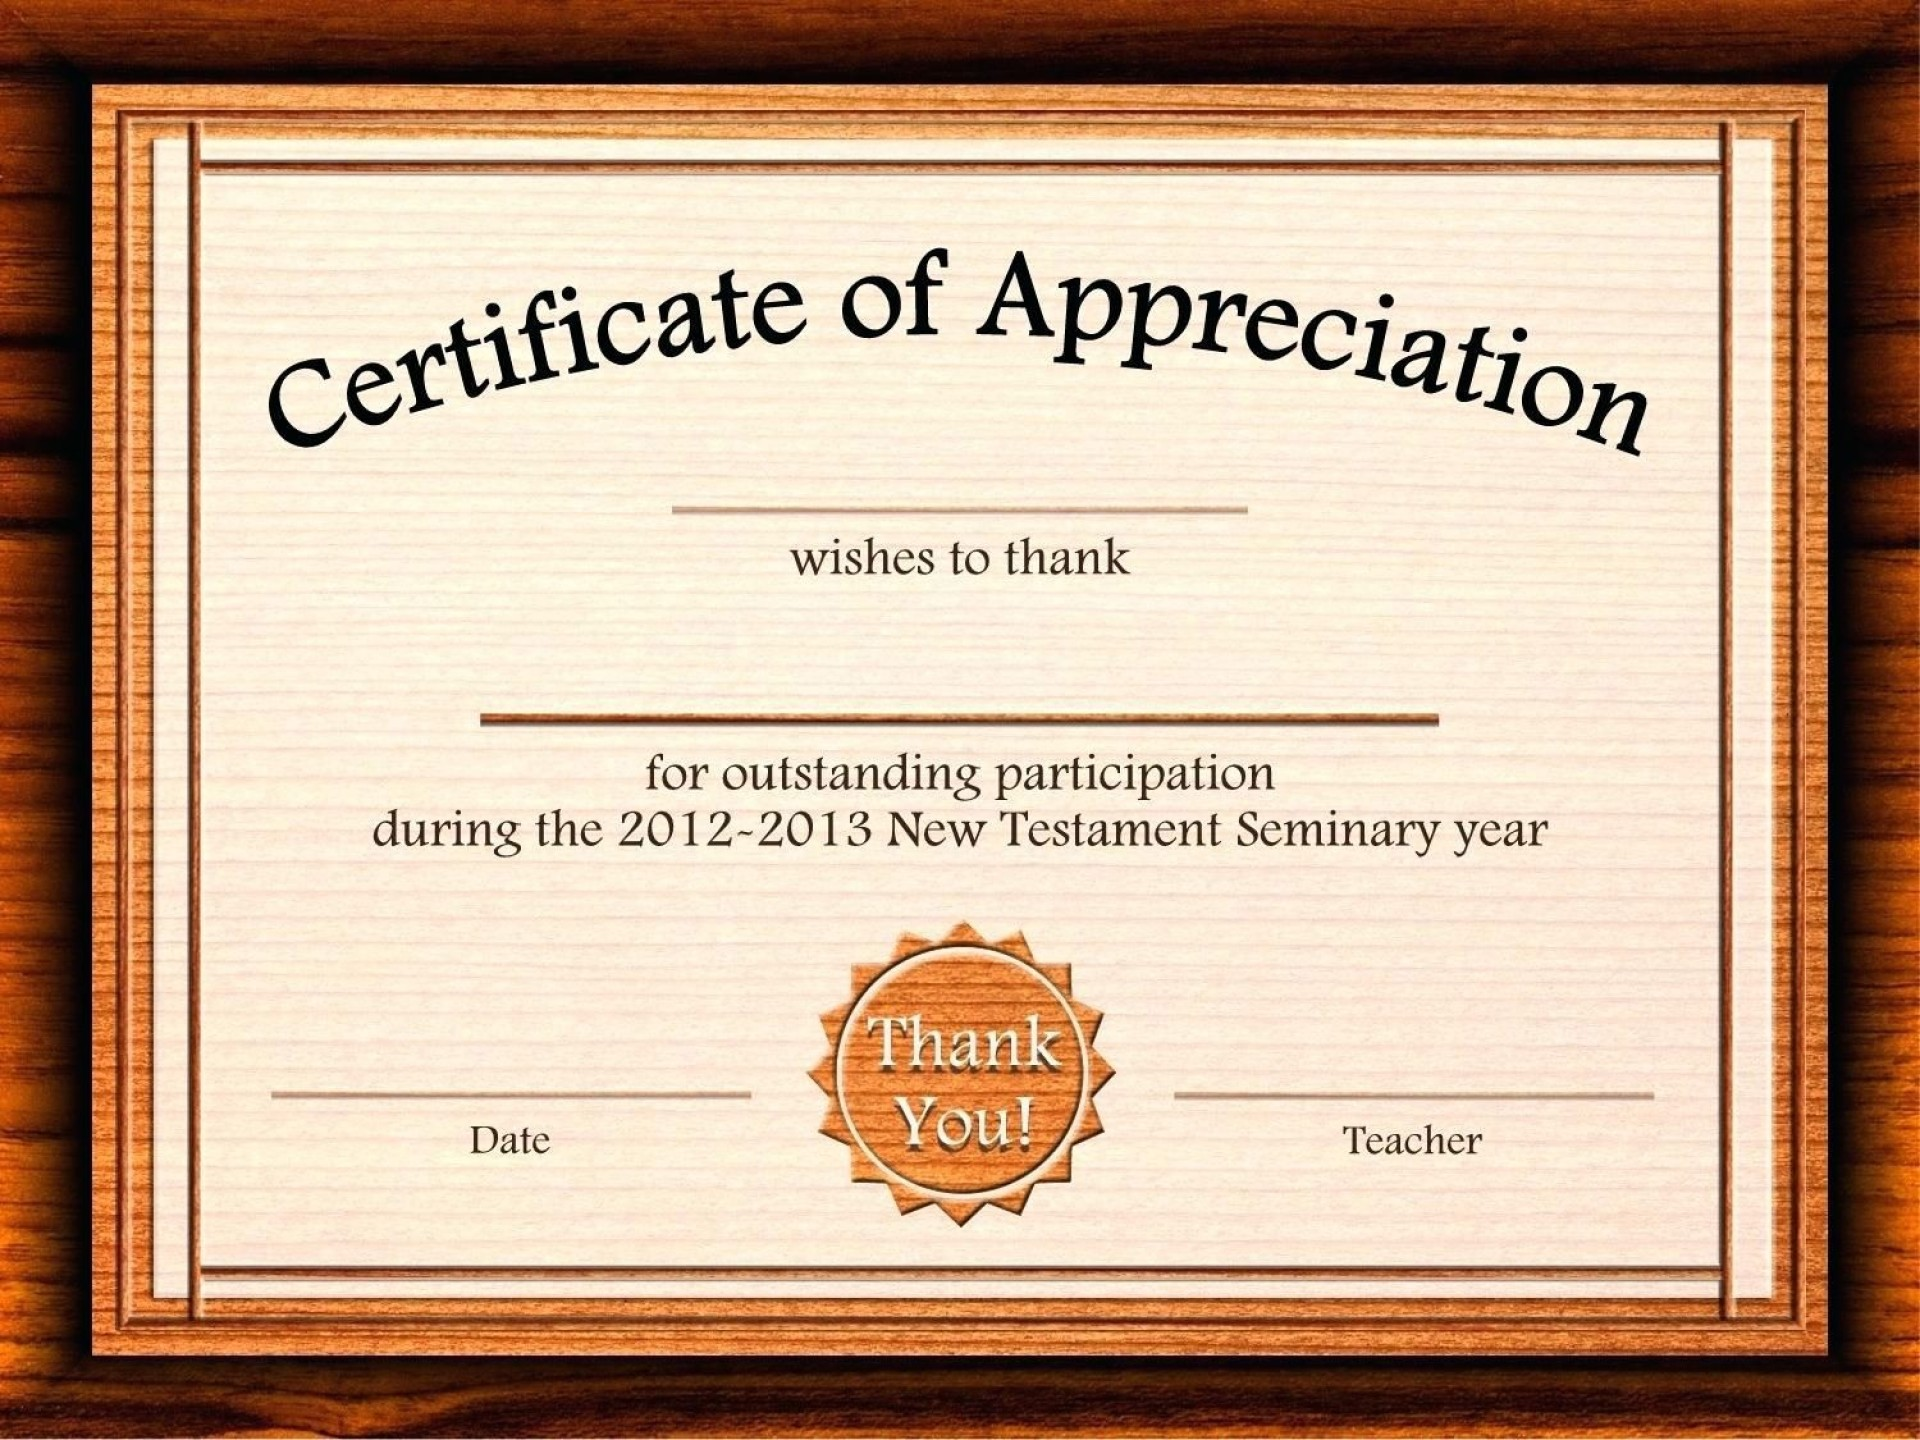 002 Outstanding Certificate Of Appreciation Template Free Design  Microsoft Word Download Publisher Editable1920